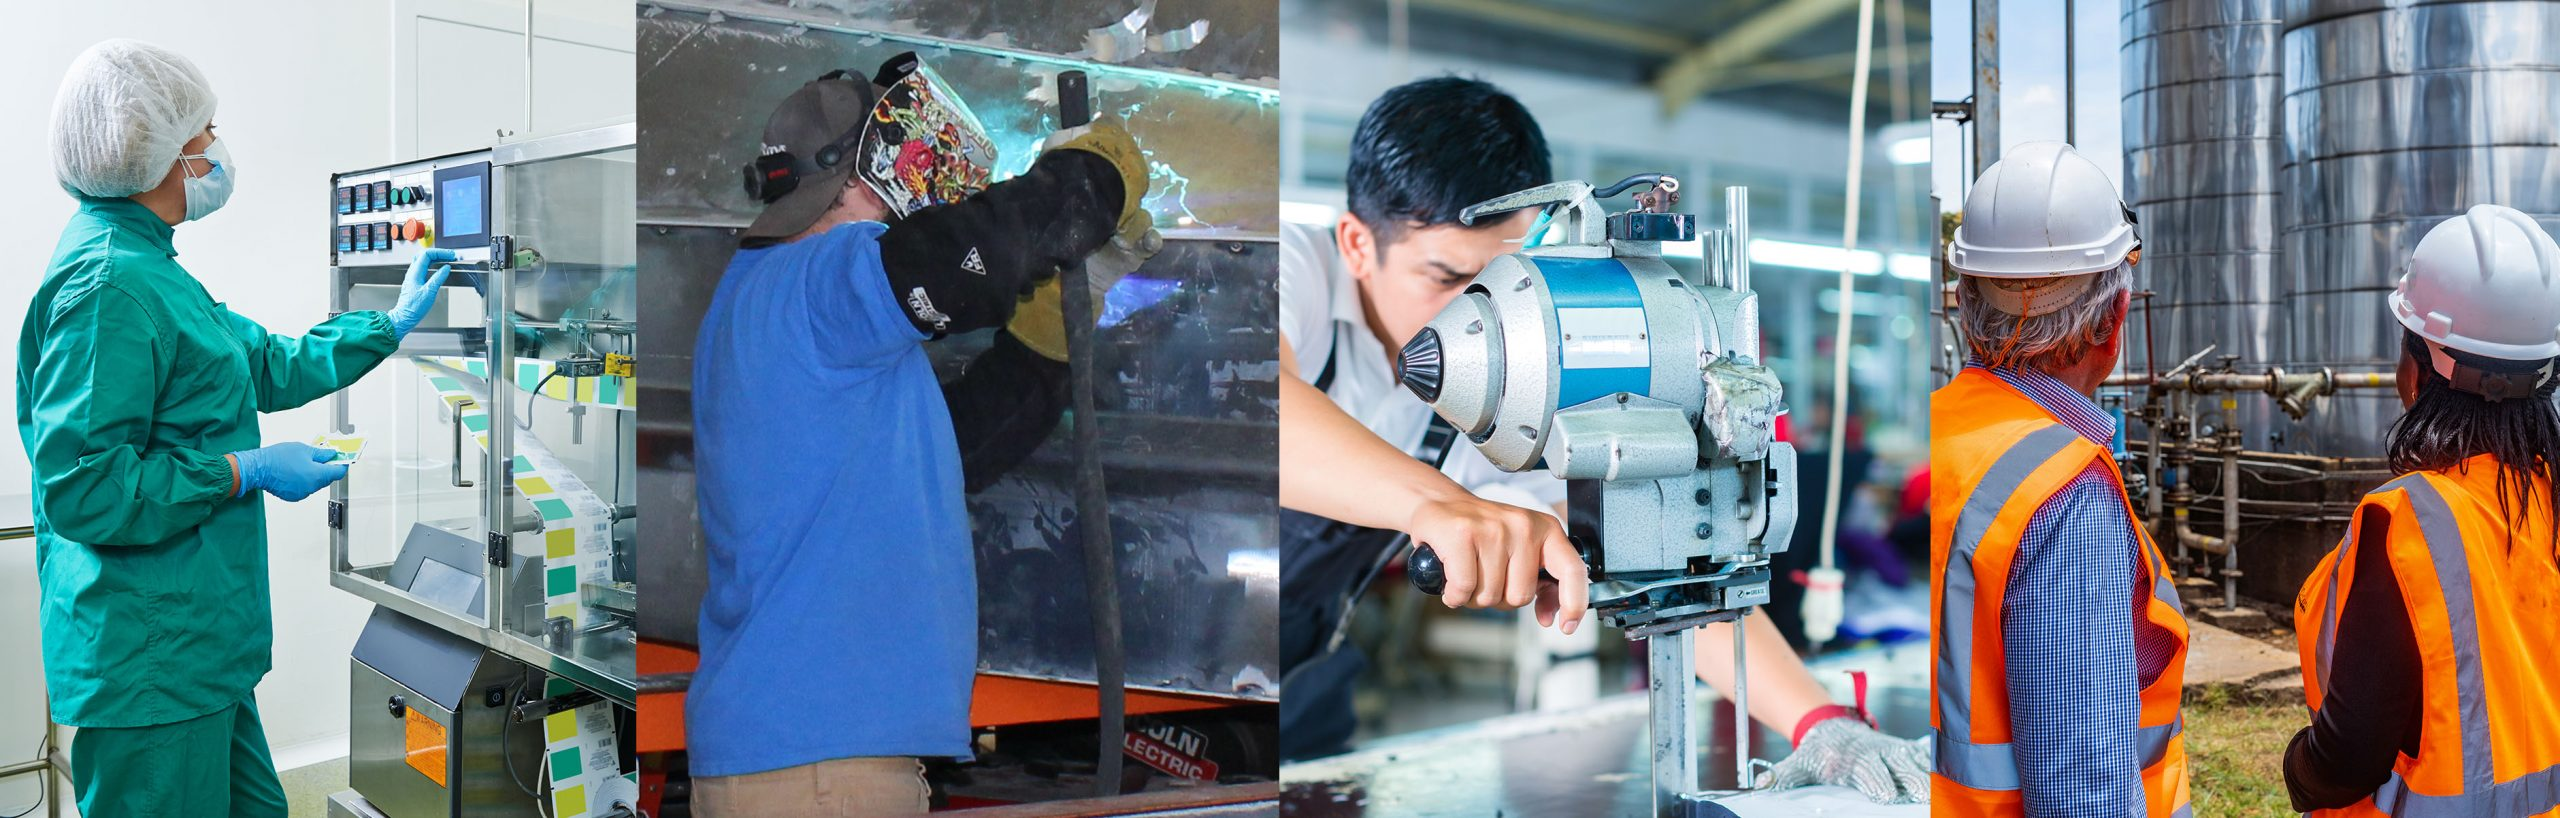 Manufacturing employees working in factories